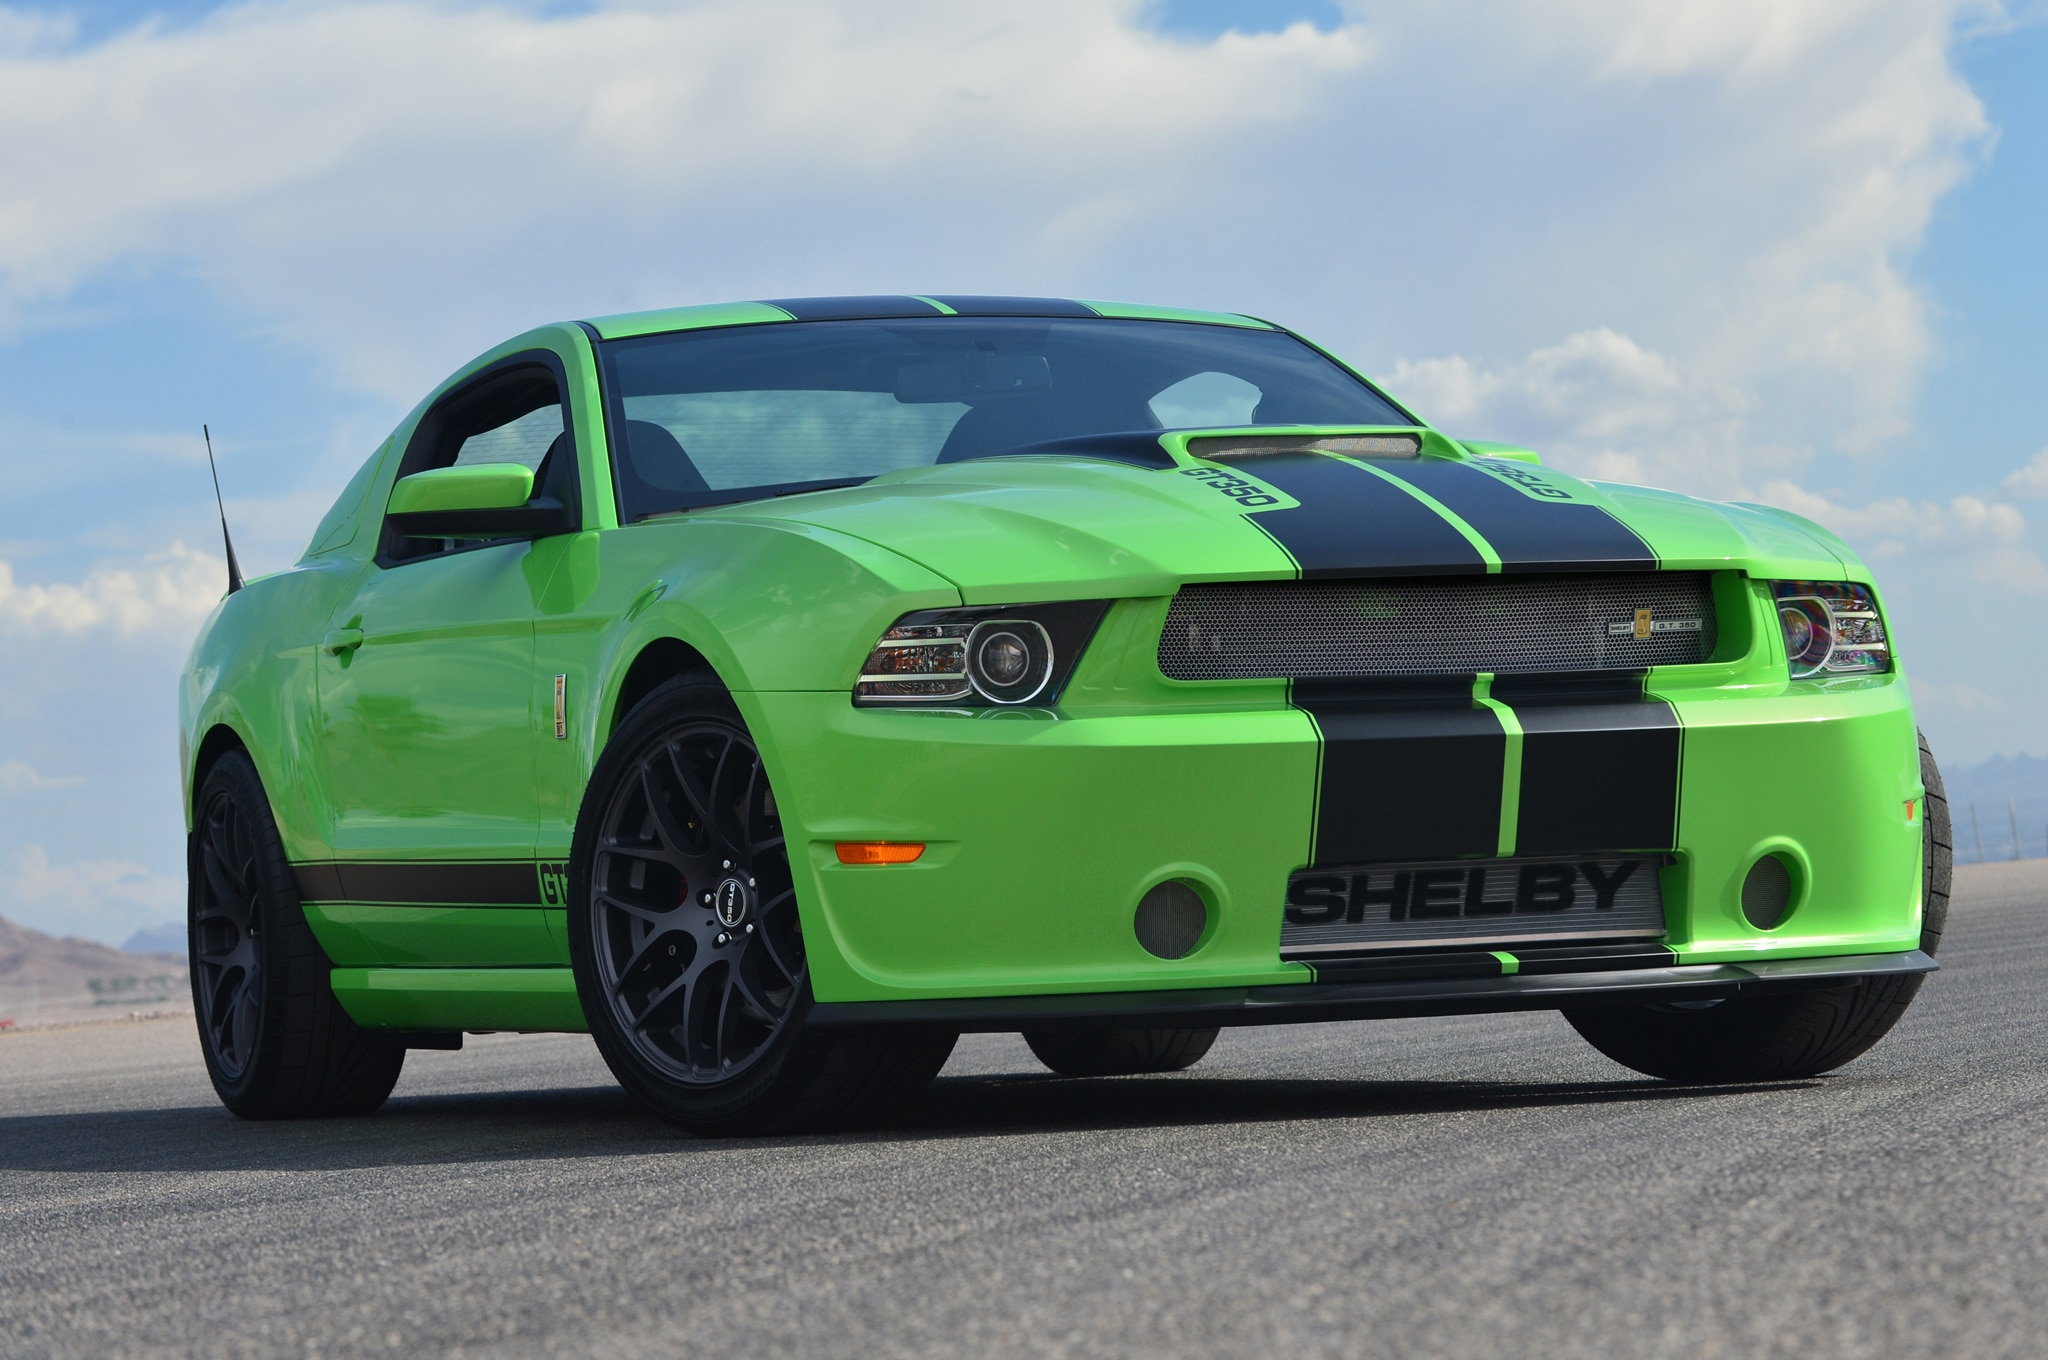 2013 Shelby Gt350 Prototype Green1